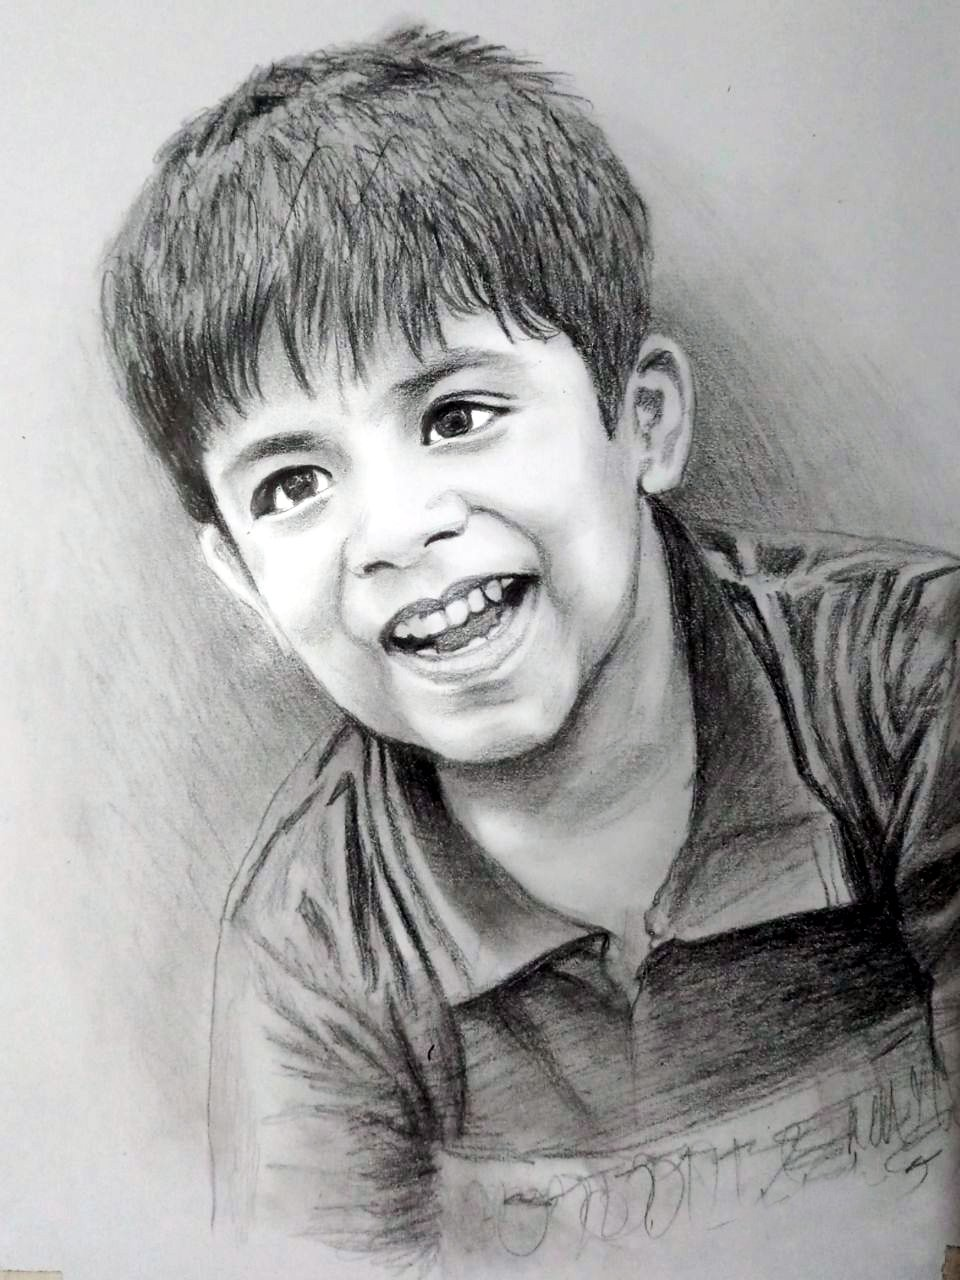 My magic gift pencil sketch portrait 12x18 amazon in home kitchen